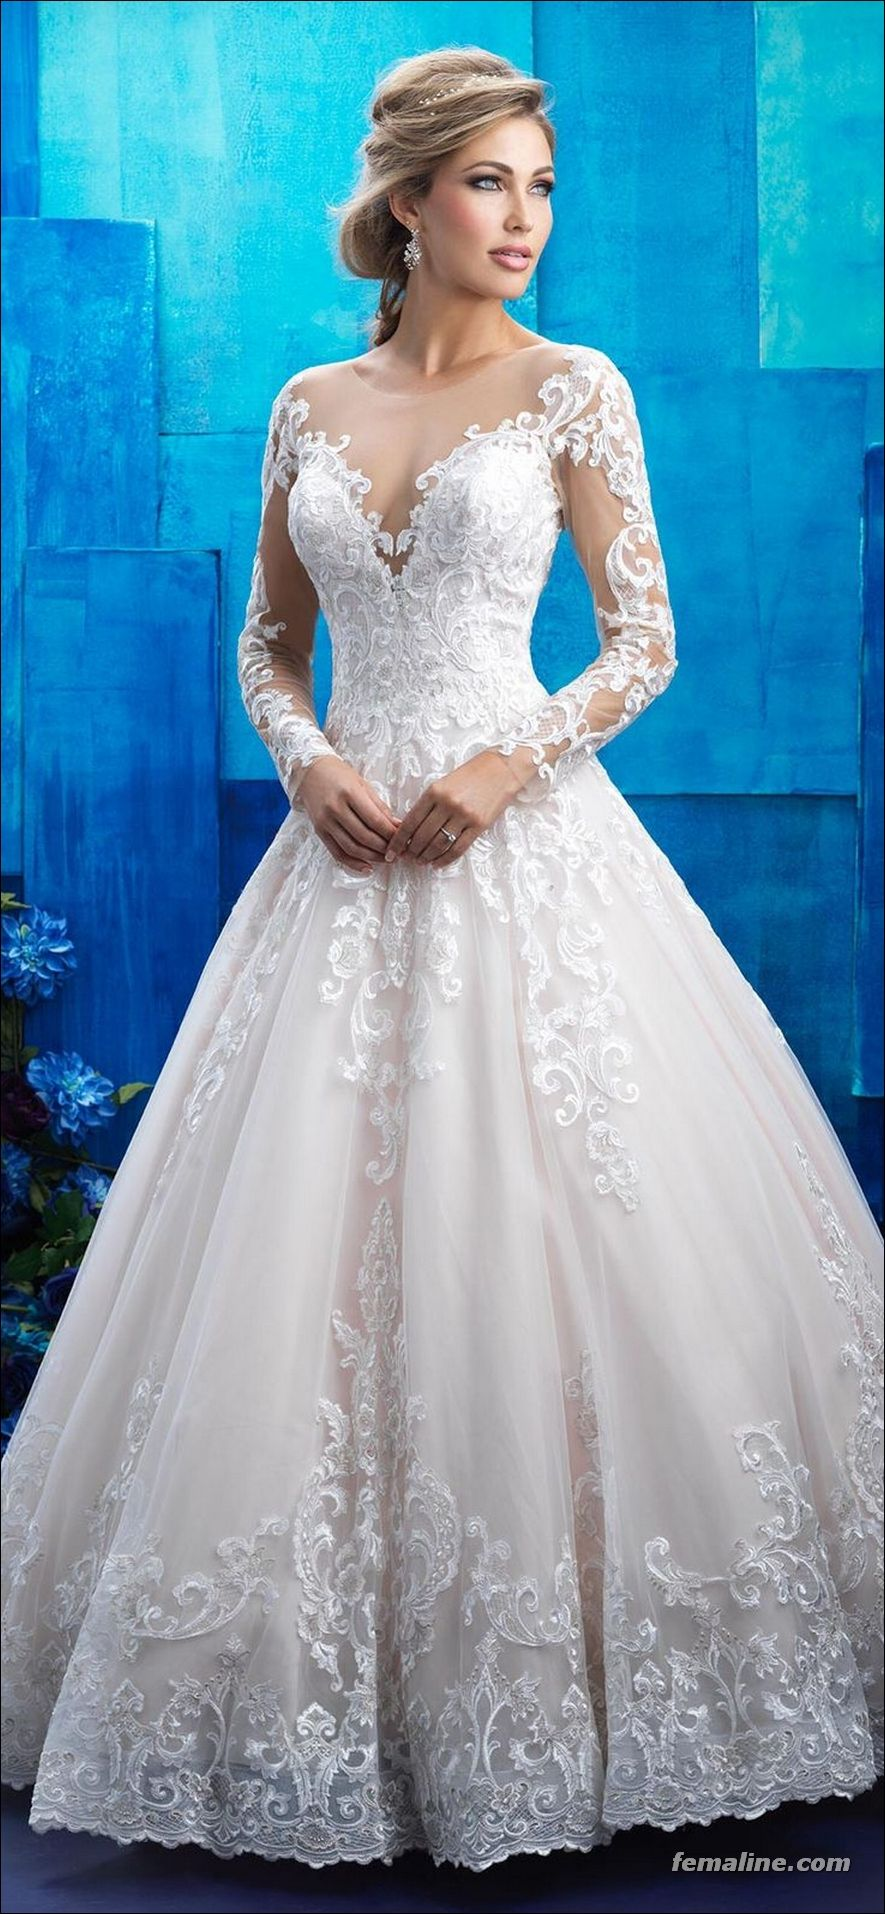 Where to find long sleeve wedding dresses   Beautiful Long Sleeve Wedding Dresses  Wedding dress Wedding